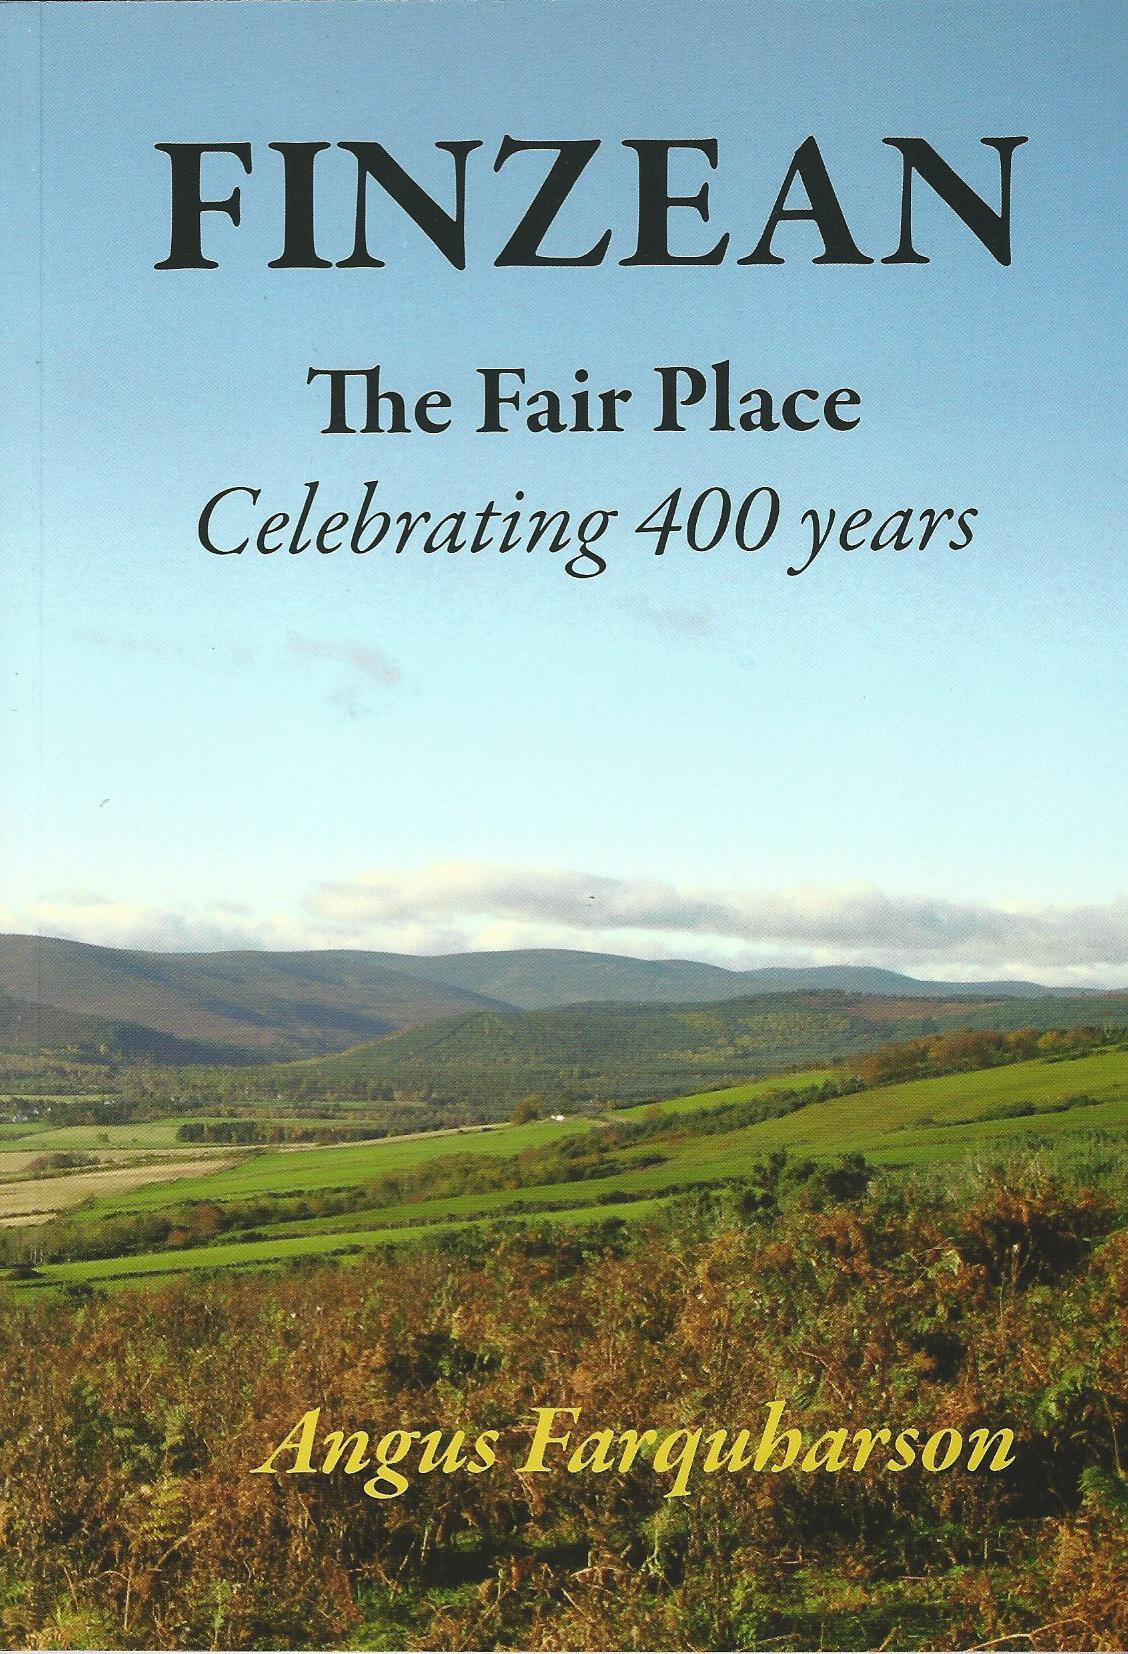 Image for Finzean The Fair Place: Celebrating 400 Years.